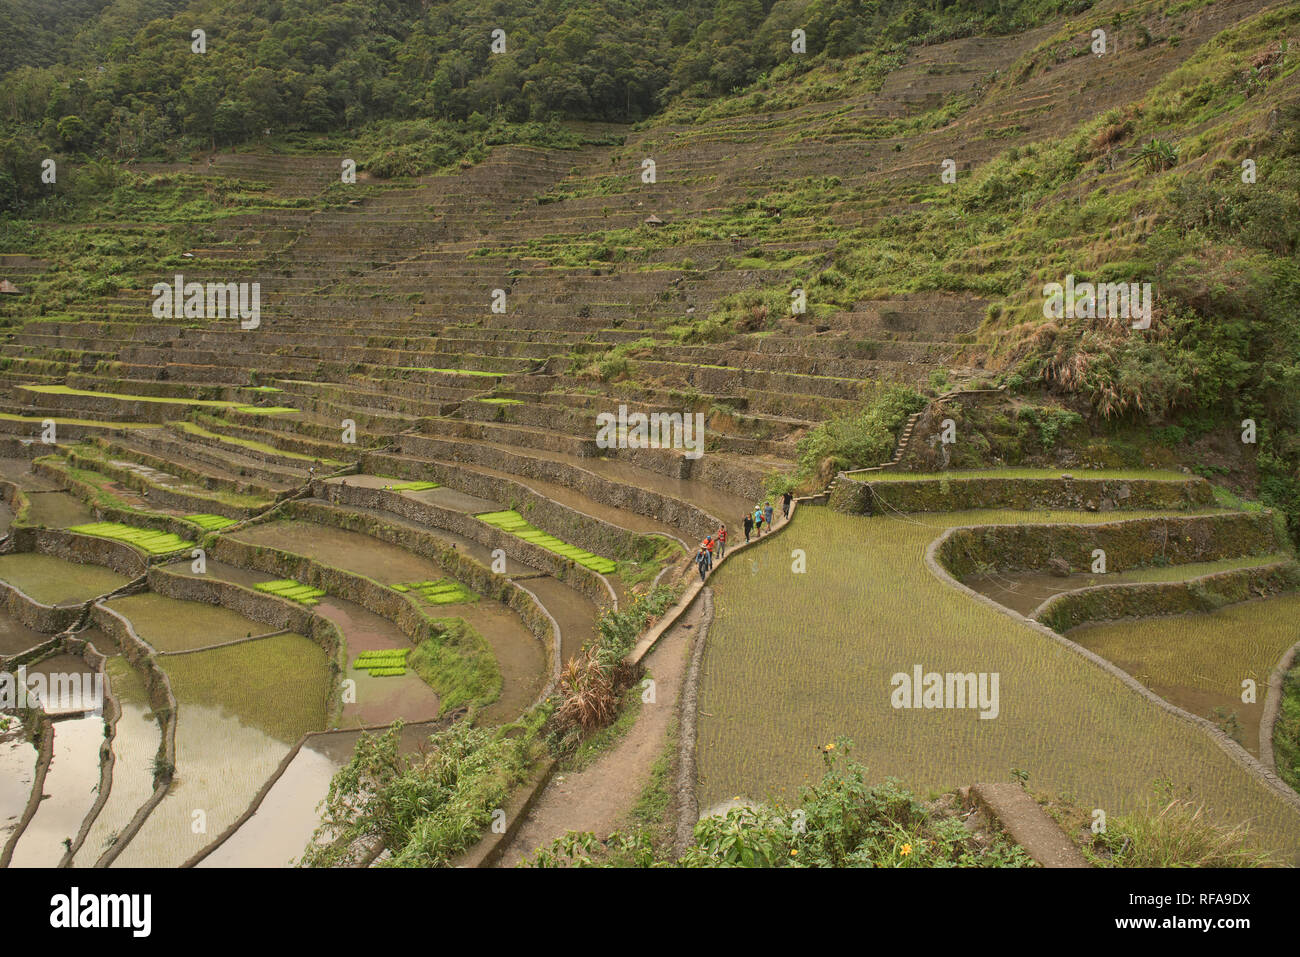 Hiking through the amazing UNESCO rice terraces of Batad, Banaue, Mountain Province, Philippines - Stock Image